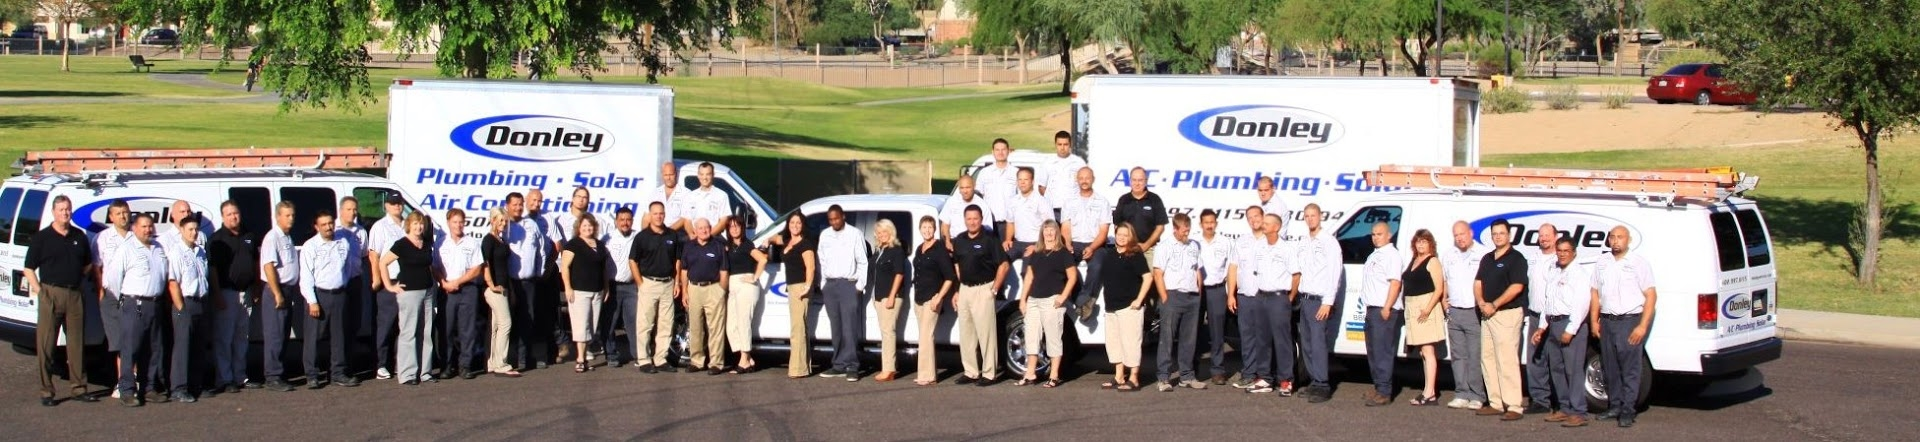 Donley Service Center In Phoenix AZ Plumbers Yellow Pages Directory Inc